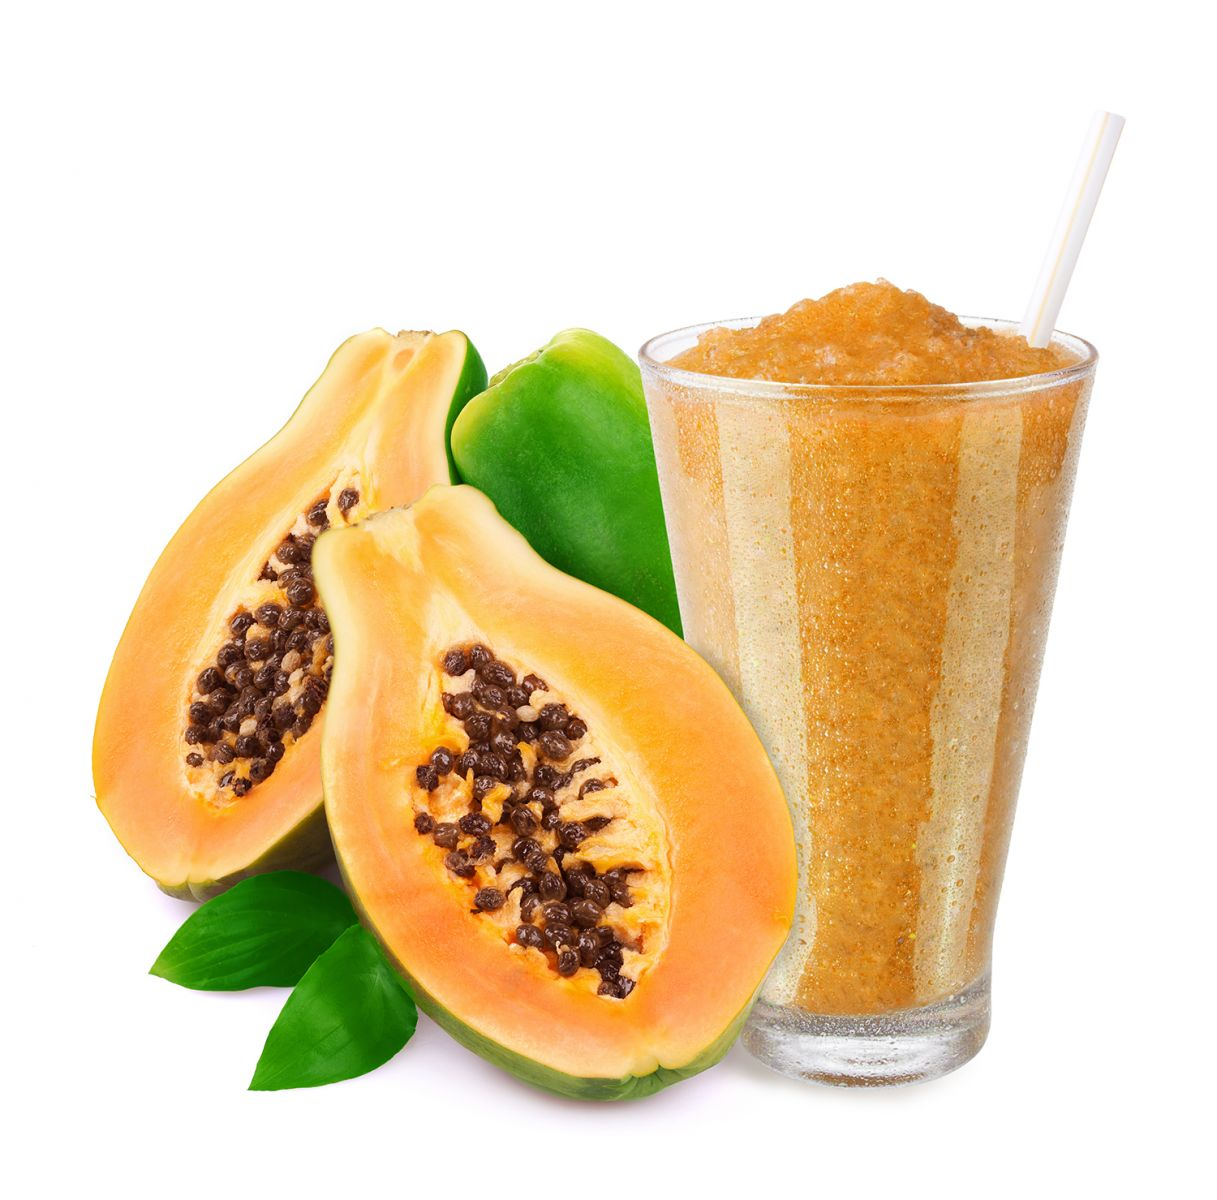 https://www.lavifood.com/en/products/puree/papaya-1